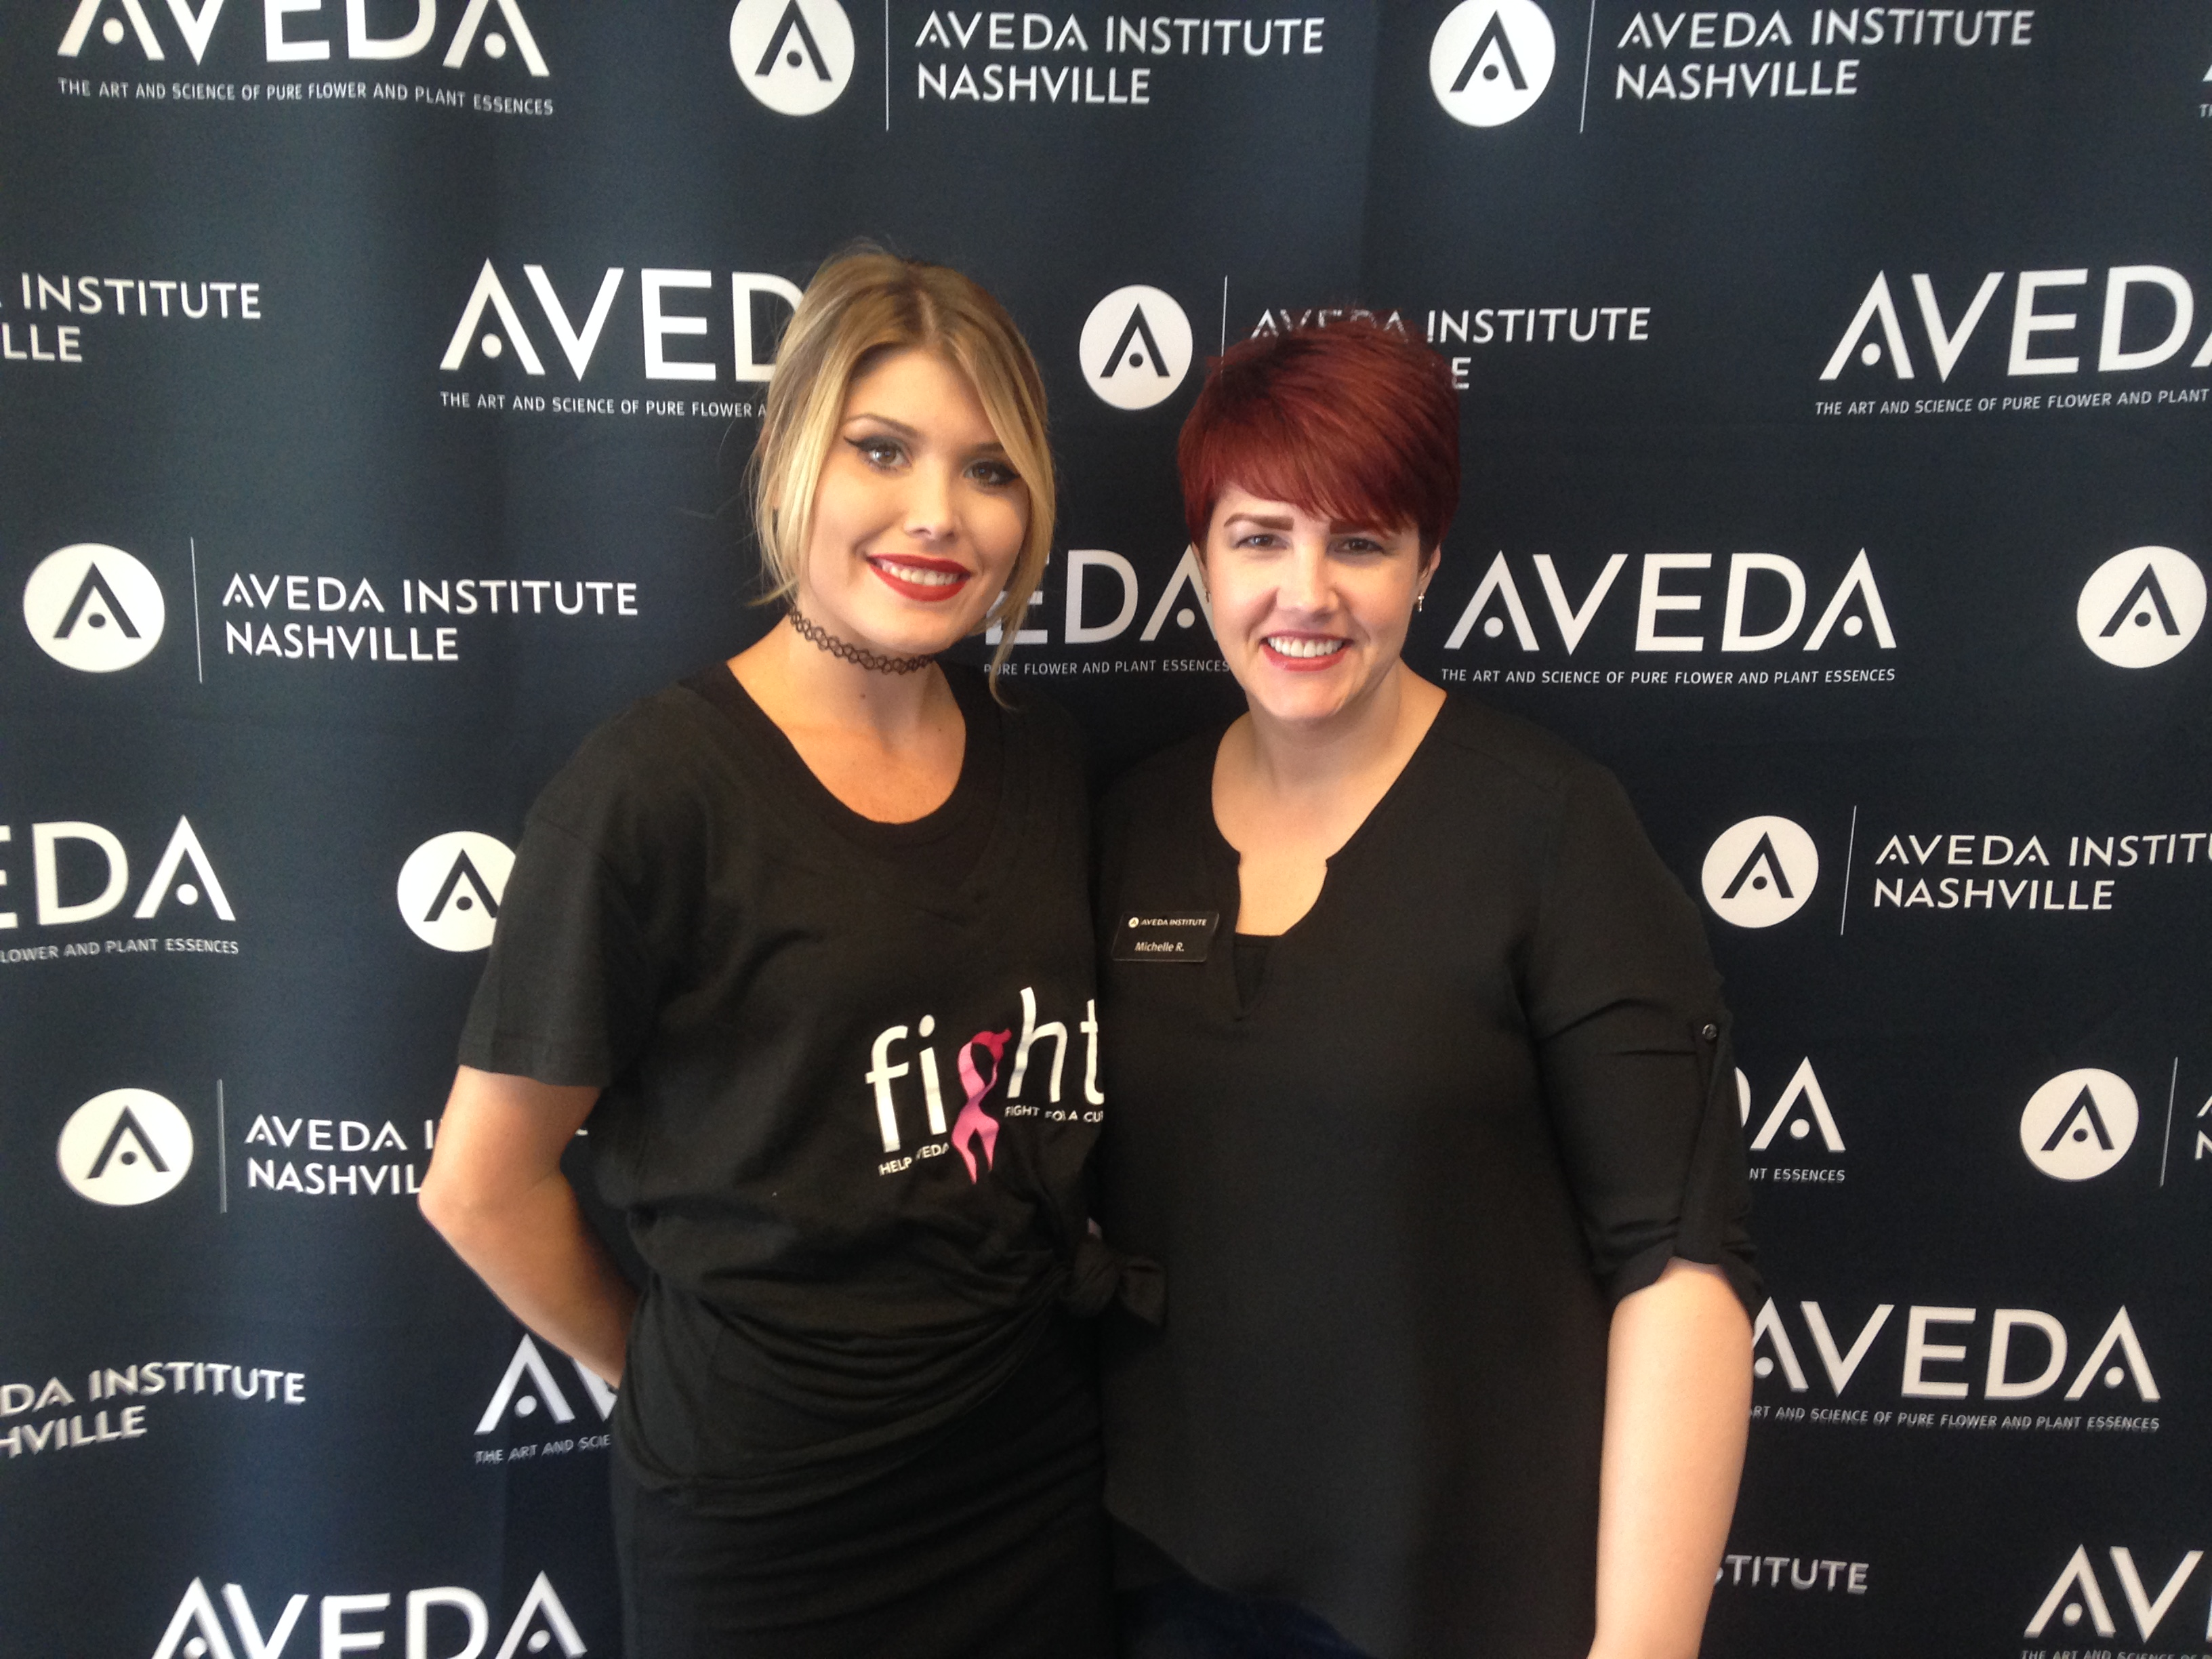 Aveda Arts & Sciences Institute Students